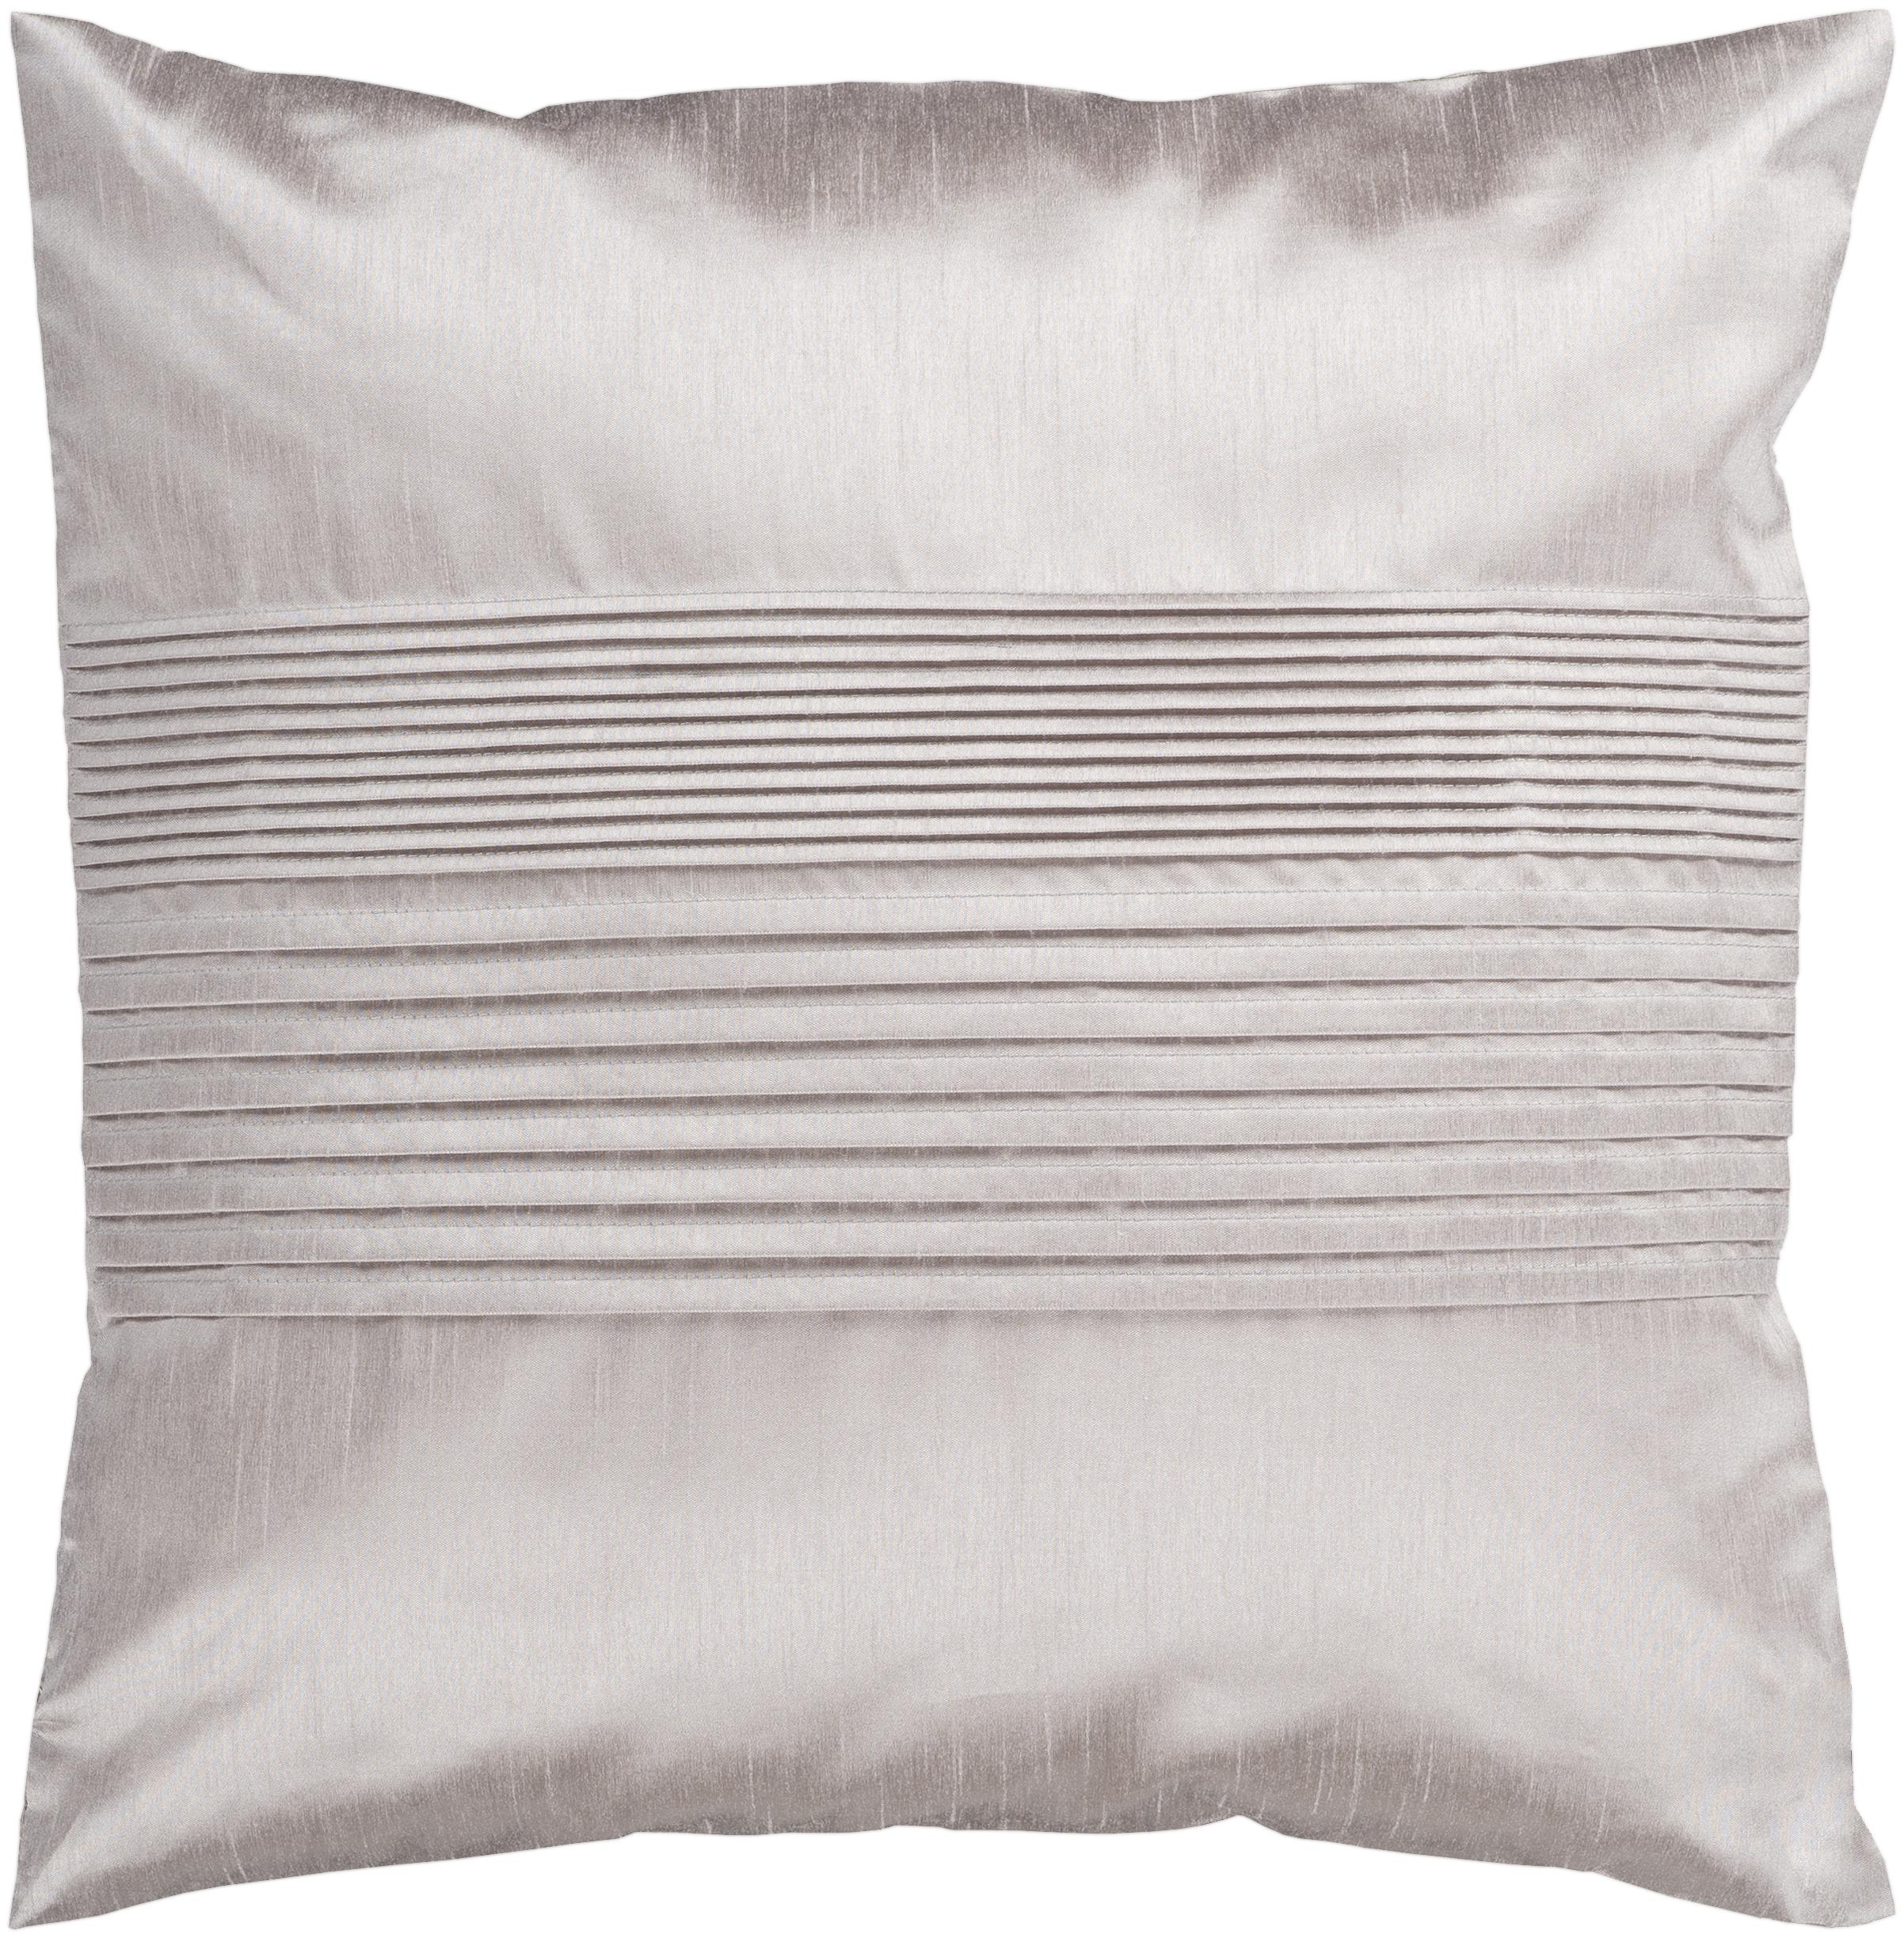 "Surya Pillows 22"" x 22"" Pillow - Item Number: HH015-2222P"